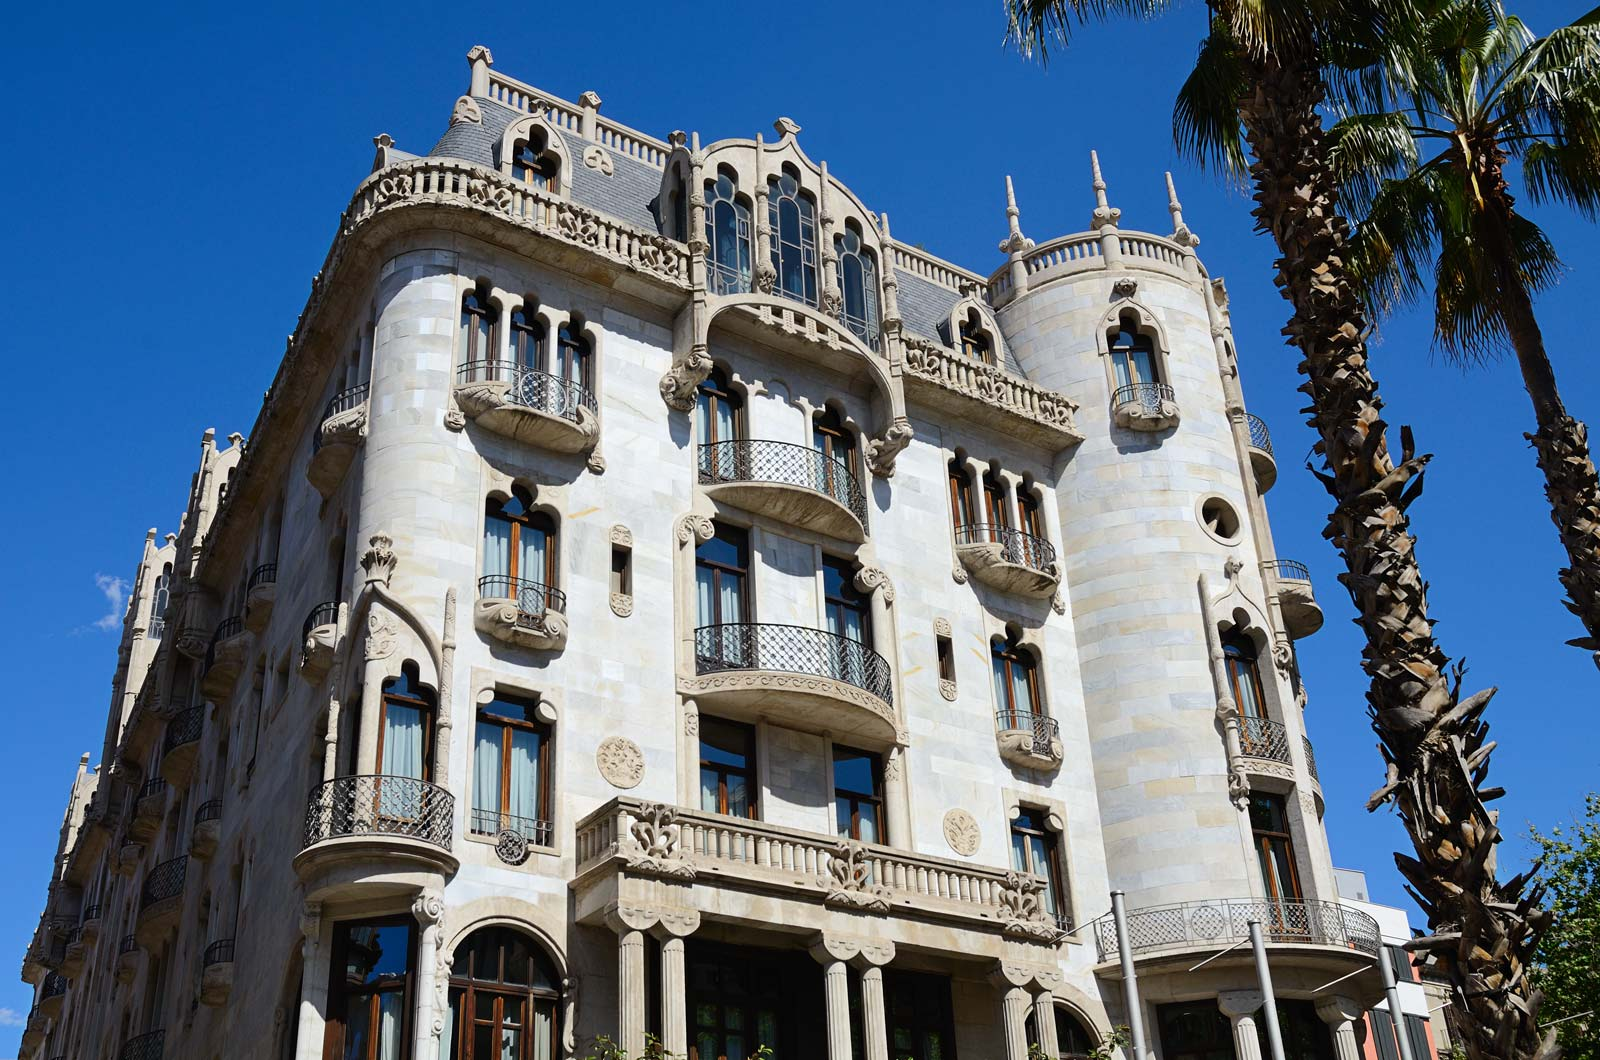 Grand Luxe Hotel Casa Fuster in Barcelona